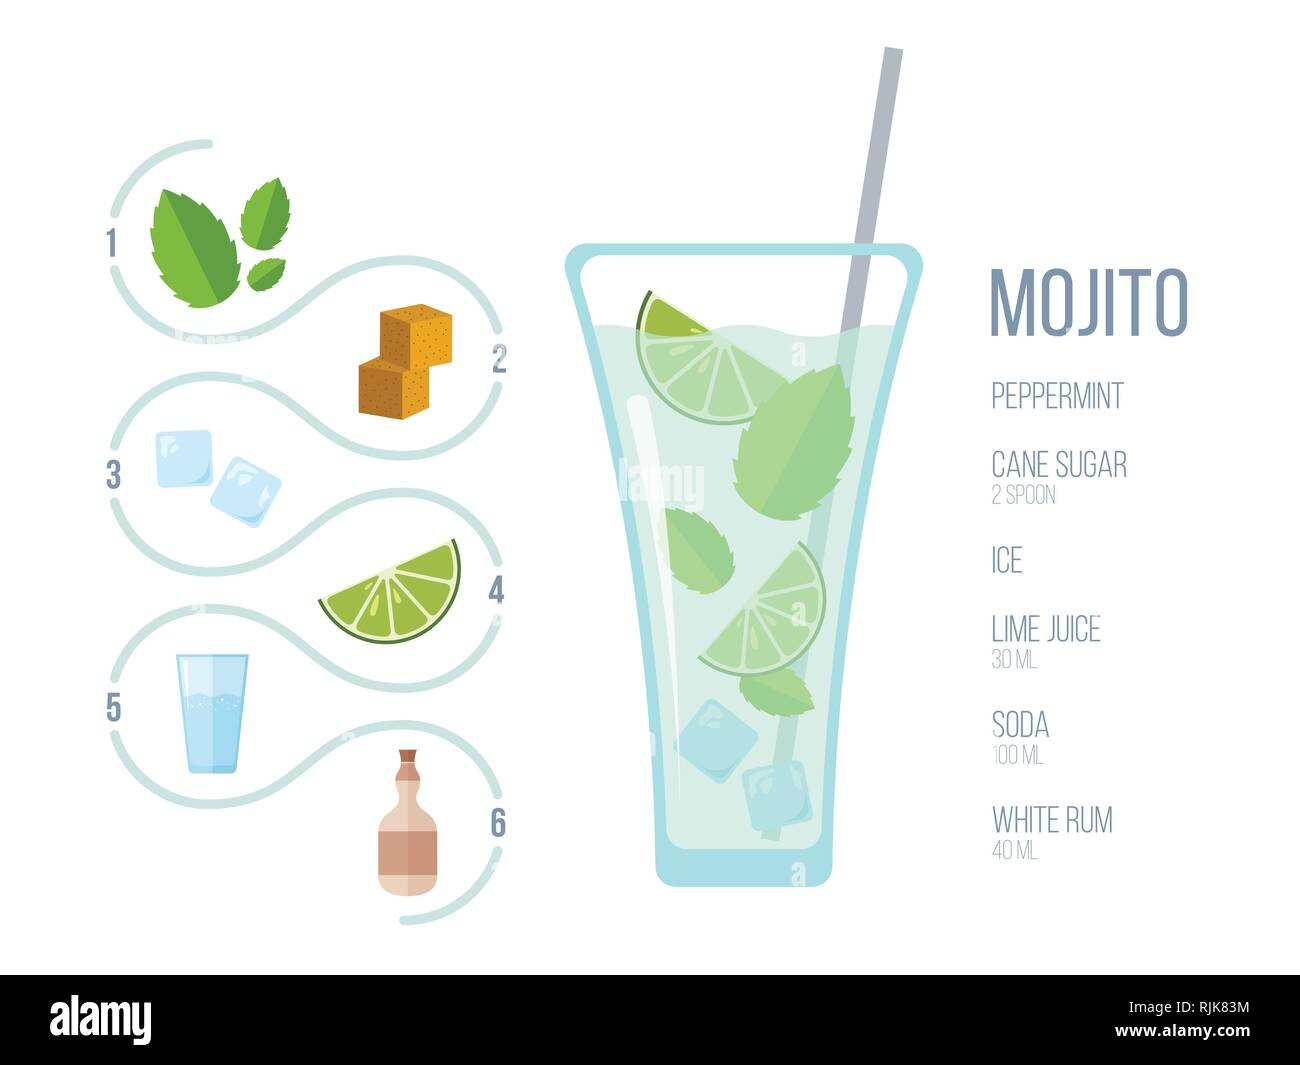 Popular alcoholic cocktail Mojito. Detailed recipe and ingredients in flat style. Pastel colors. Vector illustration. Suitable for bar and restaurant  - Stock Image